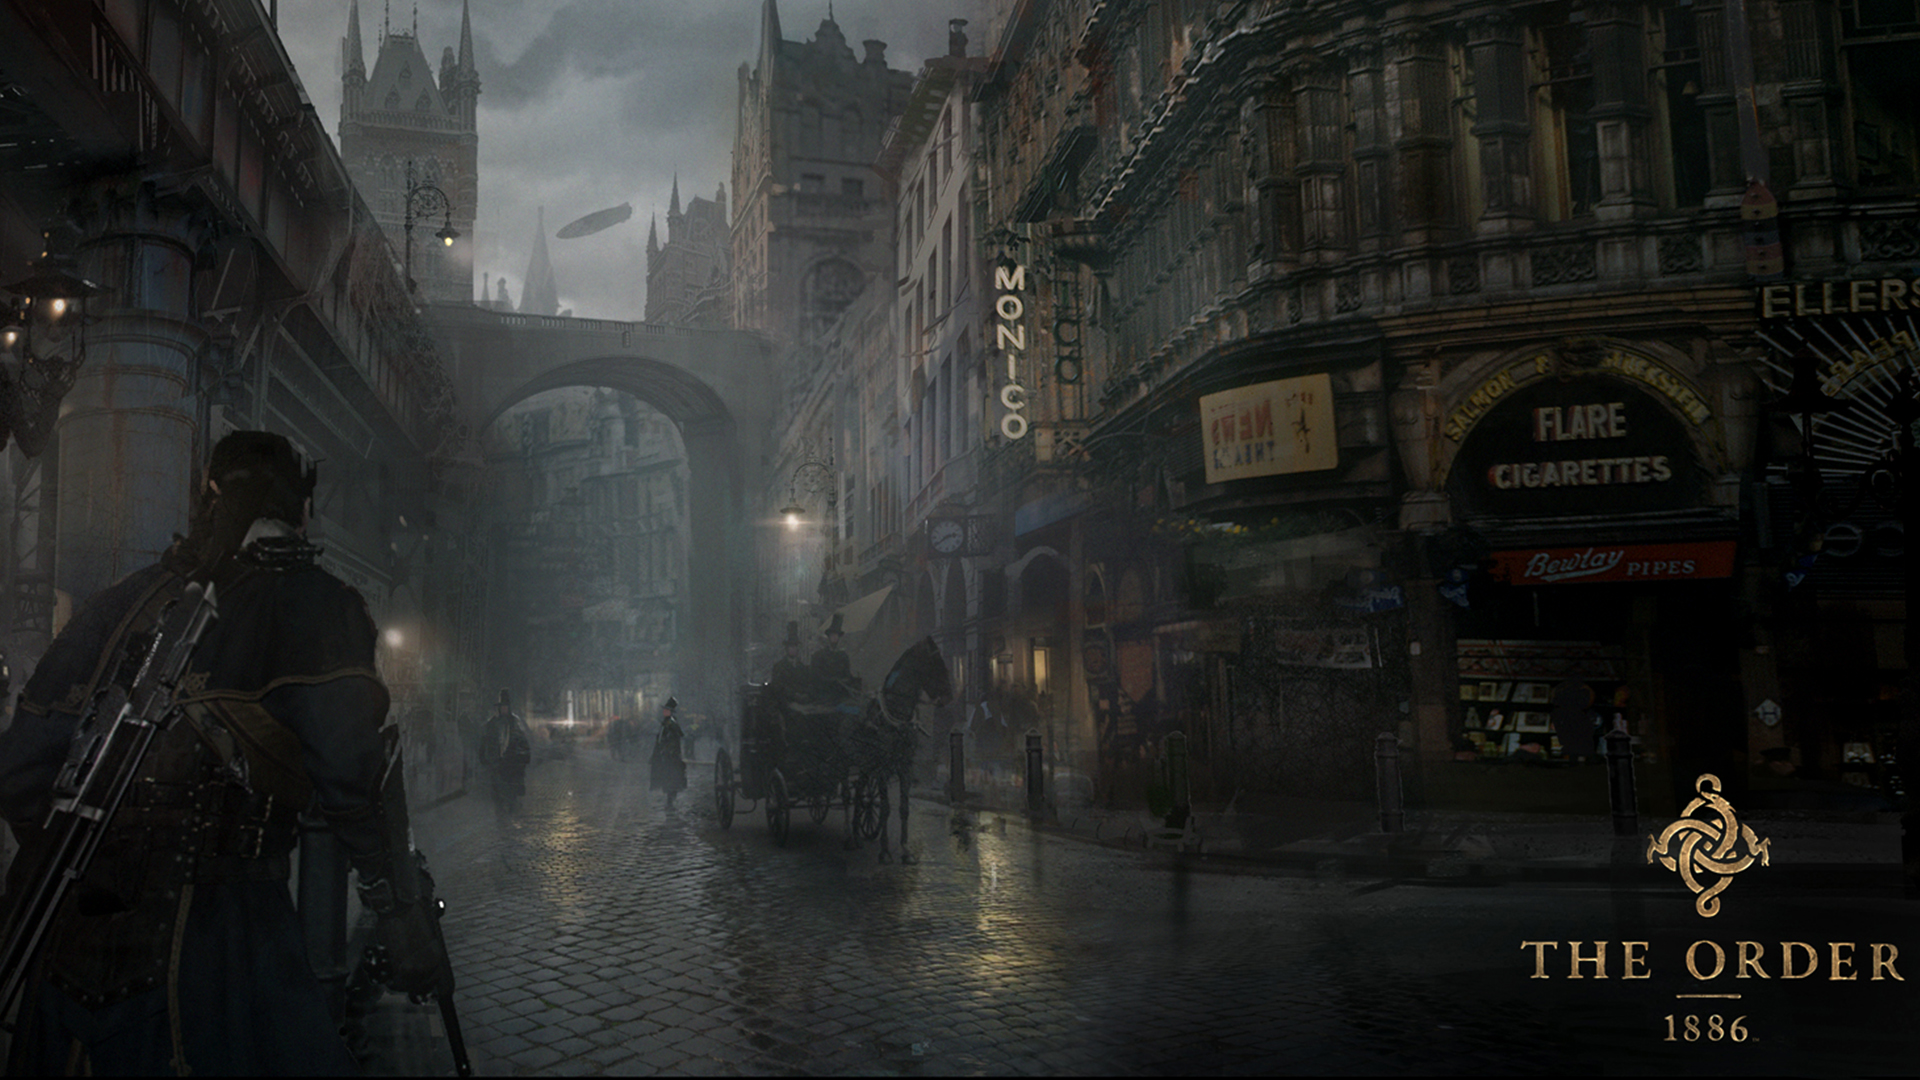 The Order 1886 4260 1920x1080 Px